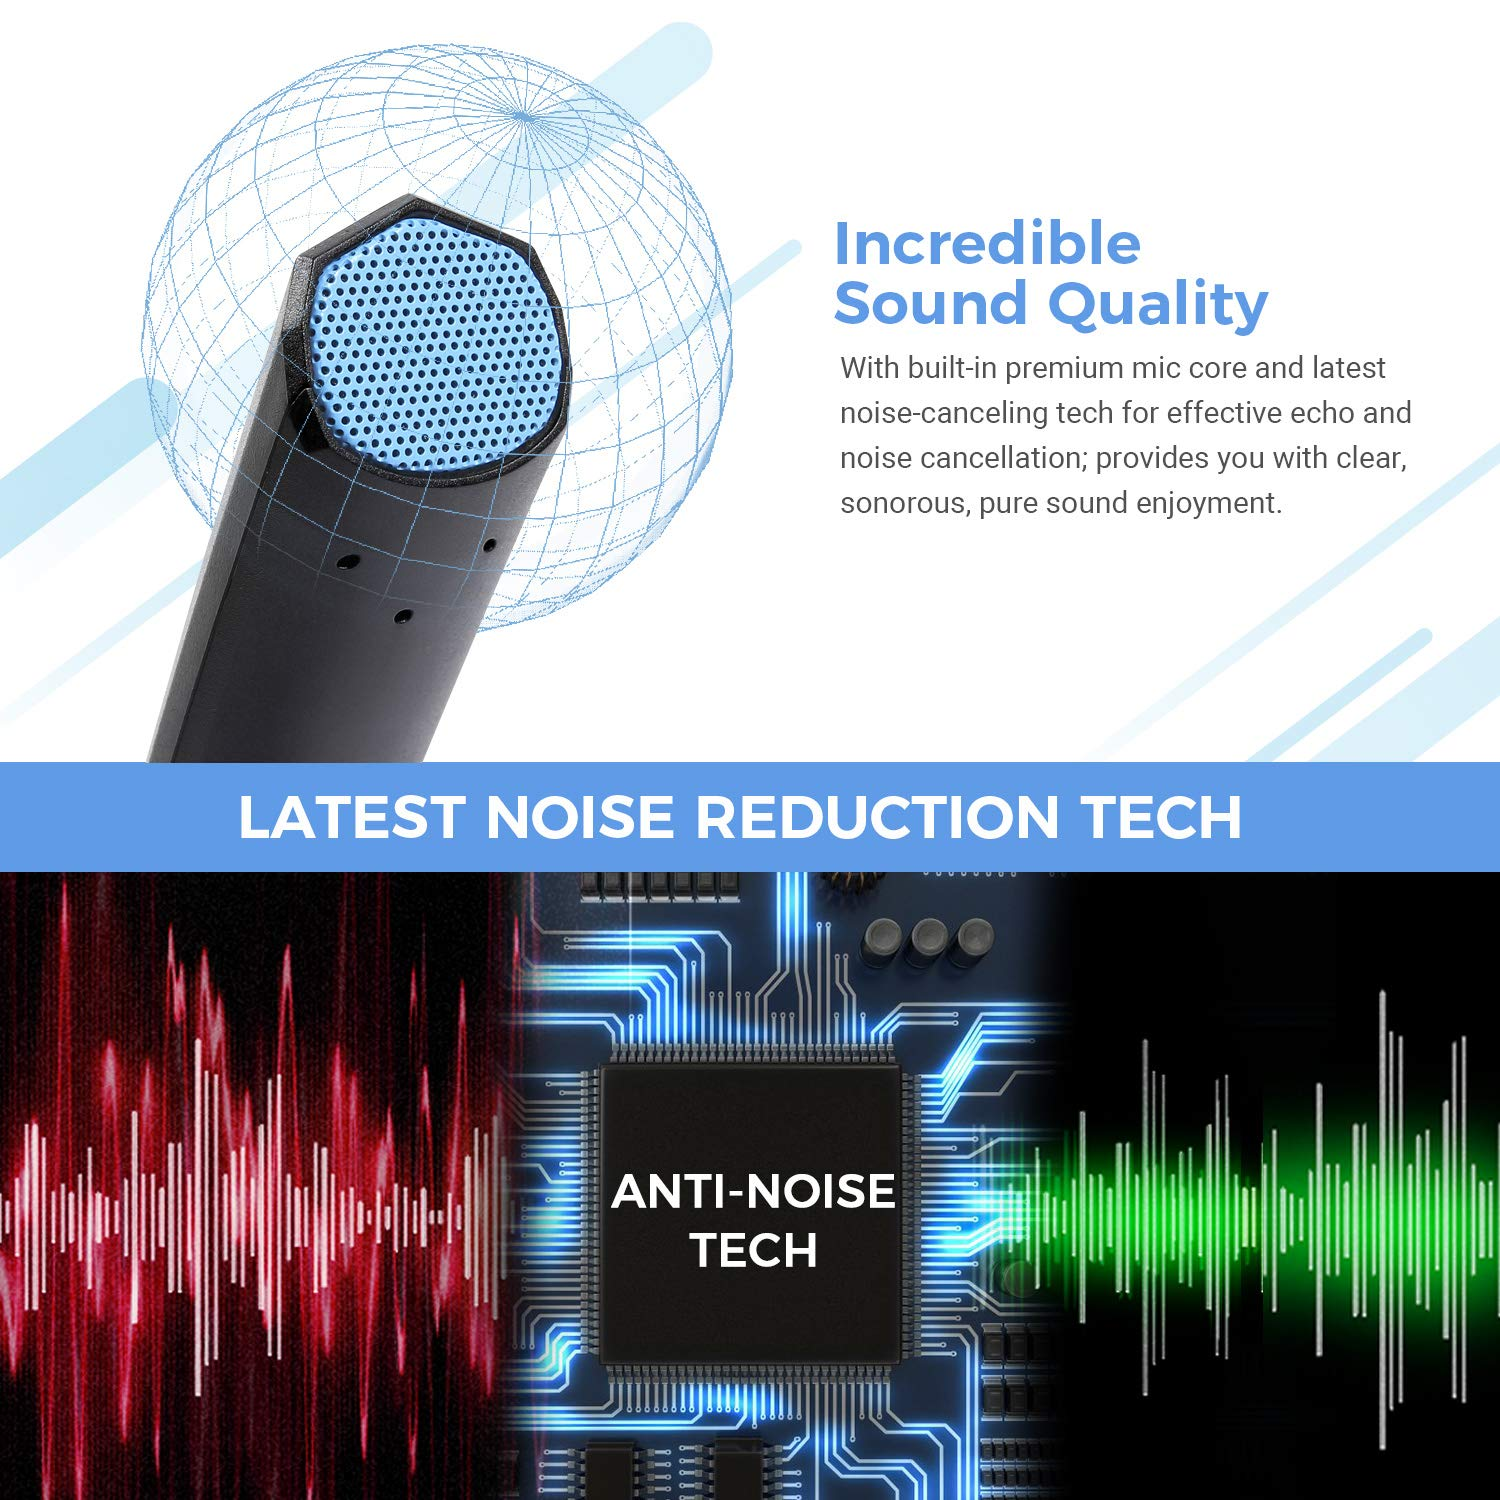 TONOR USB Microphone PC Gaming Mic with LED Indicator and Mute Button Compatible with Windows//macOS for Streaming//Chatting//Skype//YouTube//Recording//Podcasting